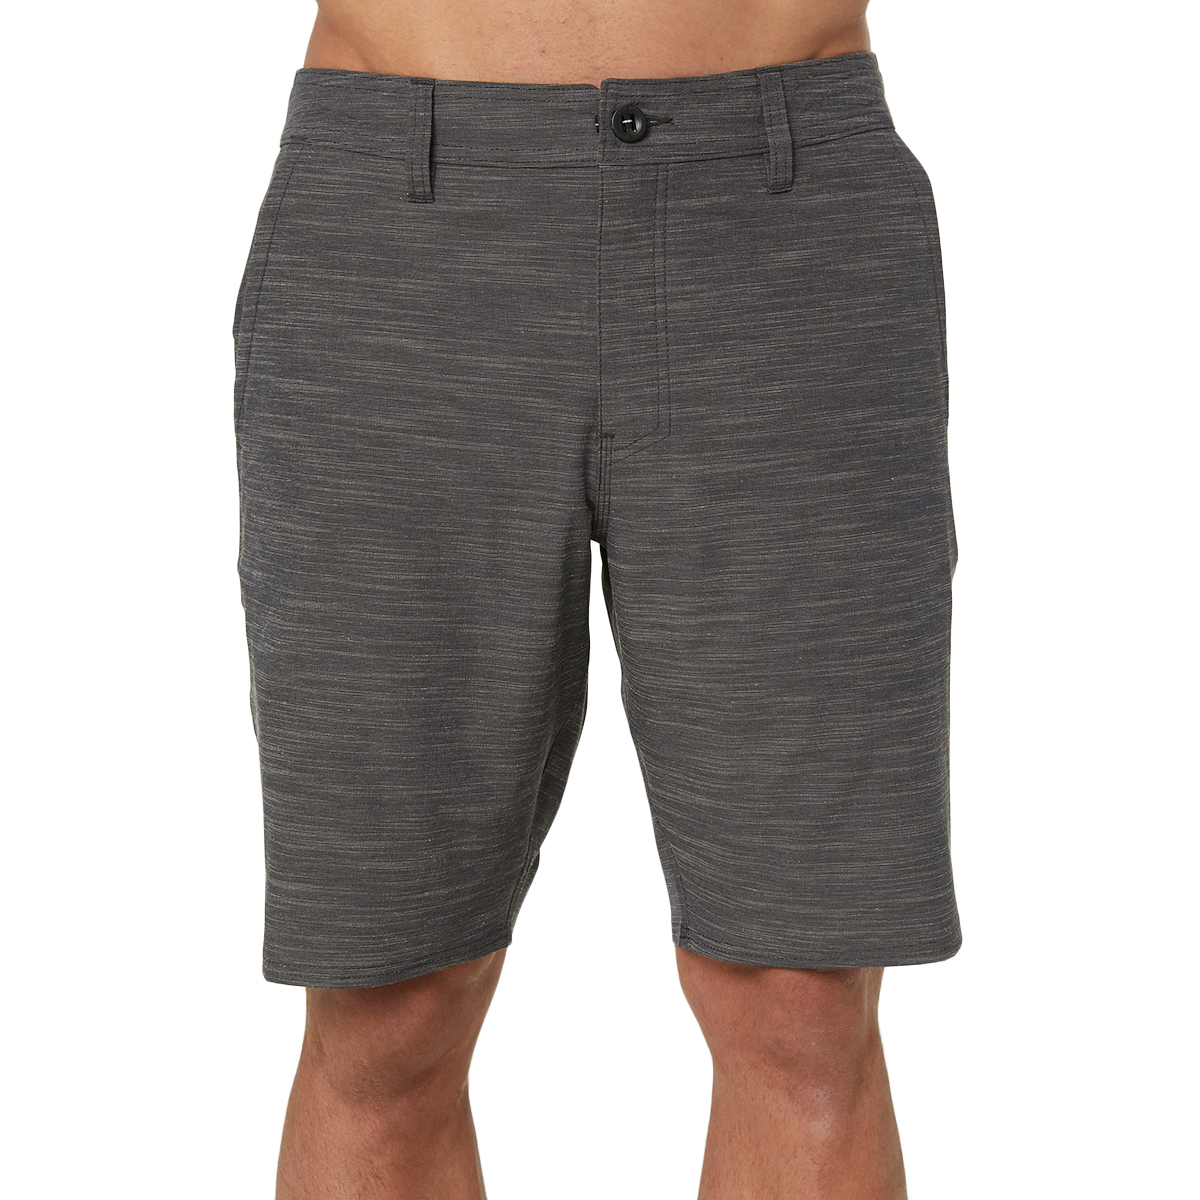 O'neill Men's Locked Slub Hybrid Shorts - Black, 34